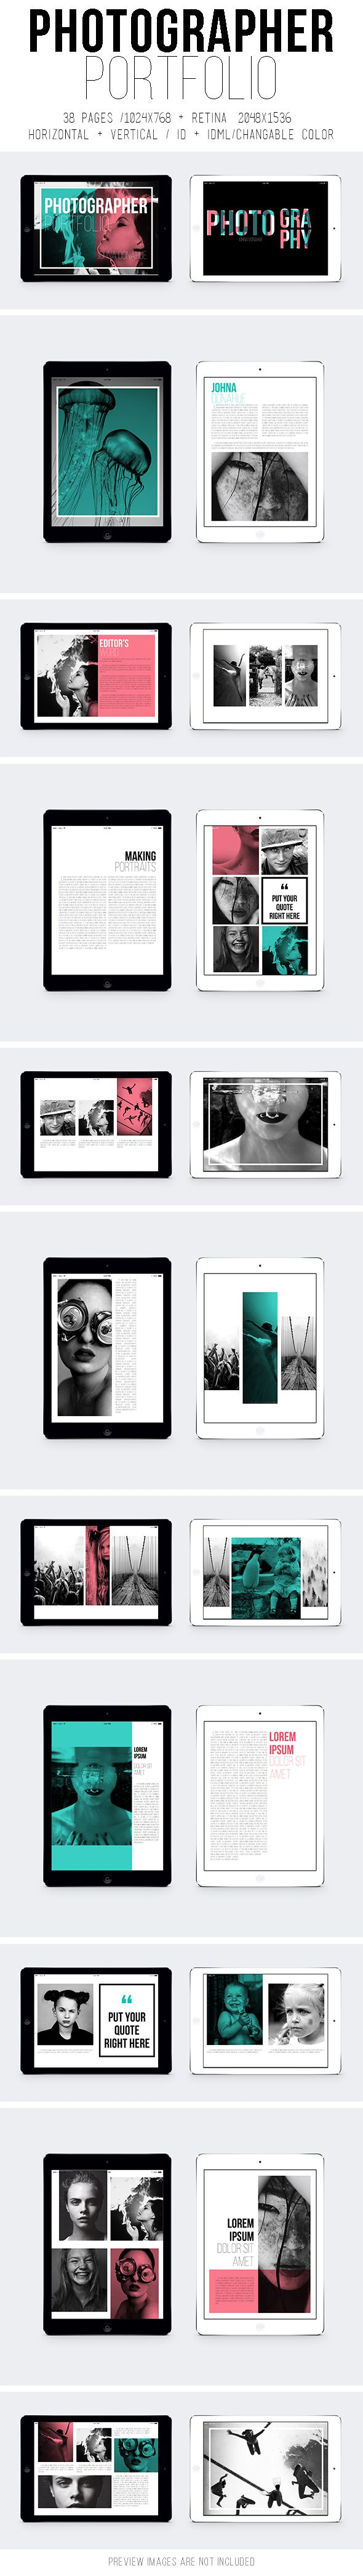 Tablet Photographer Portfolio on Behance